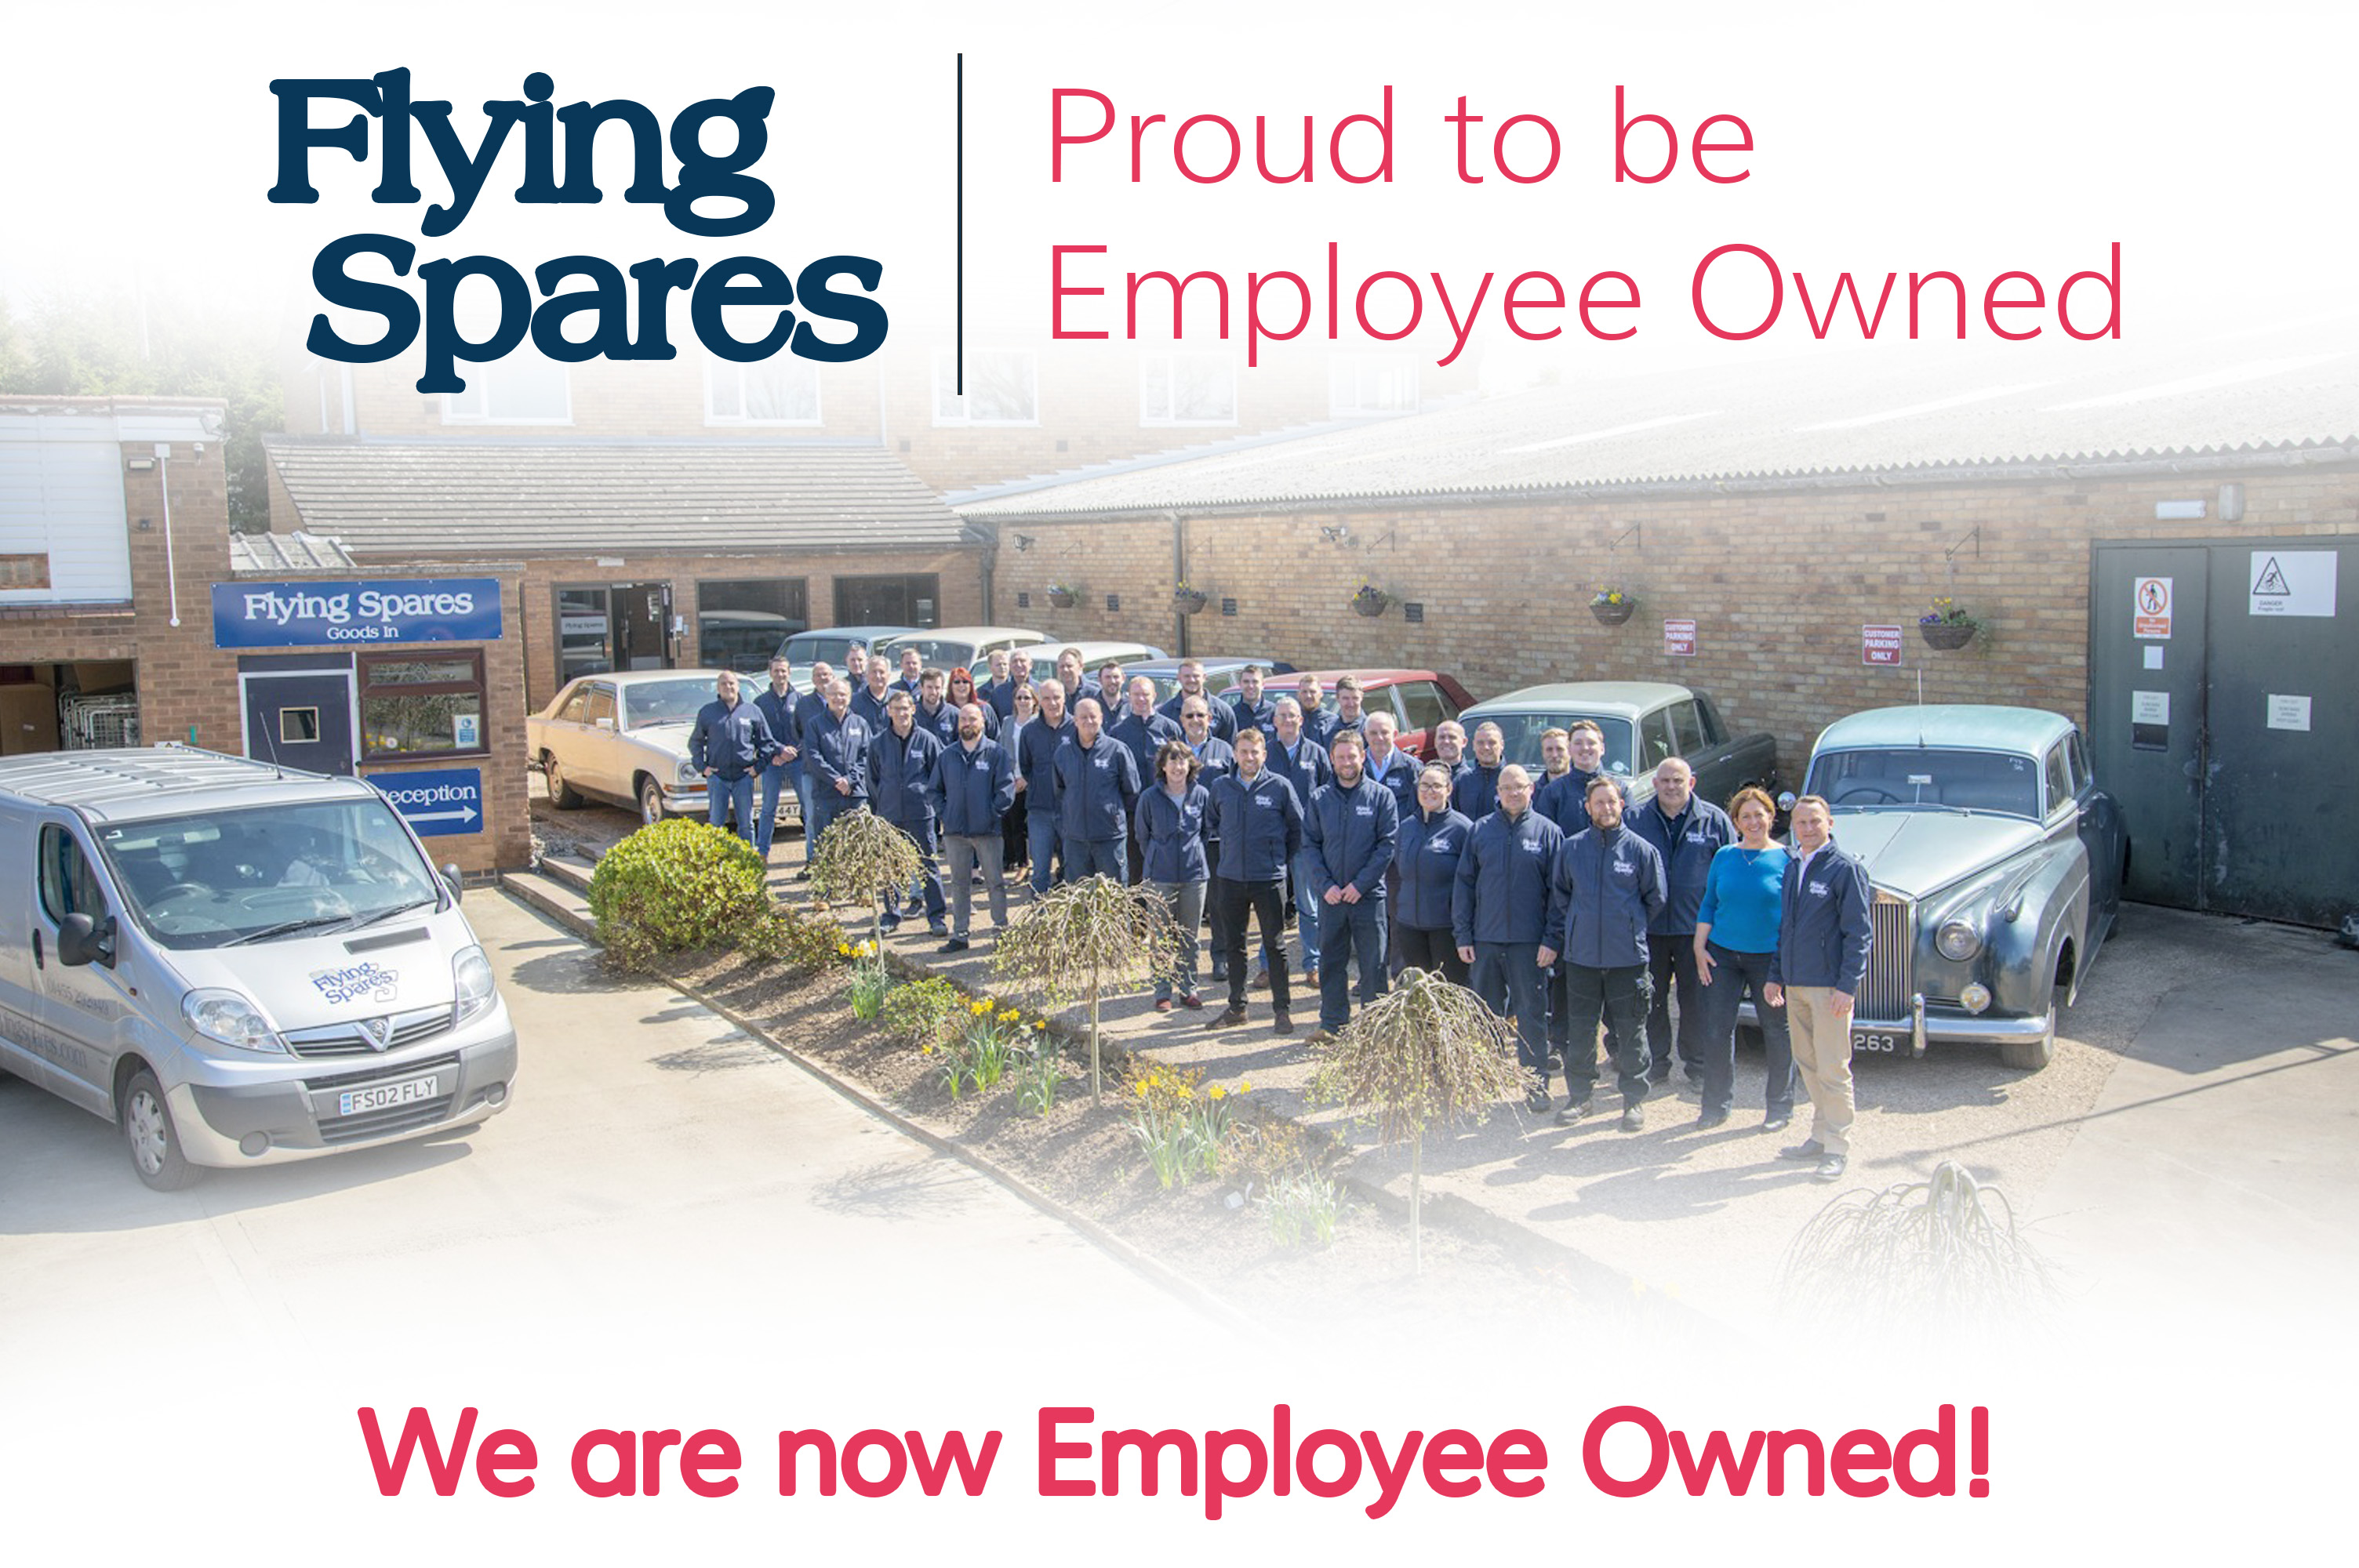 We are now Employee Owned!